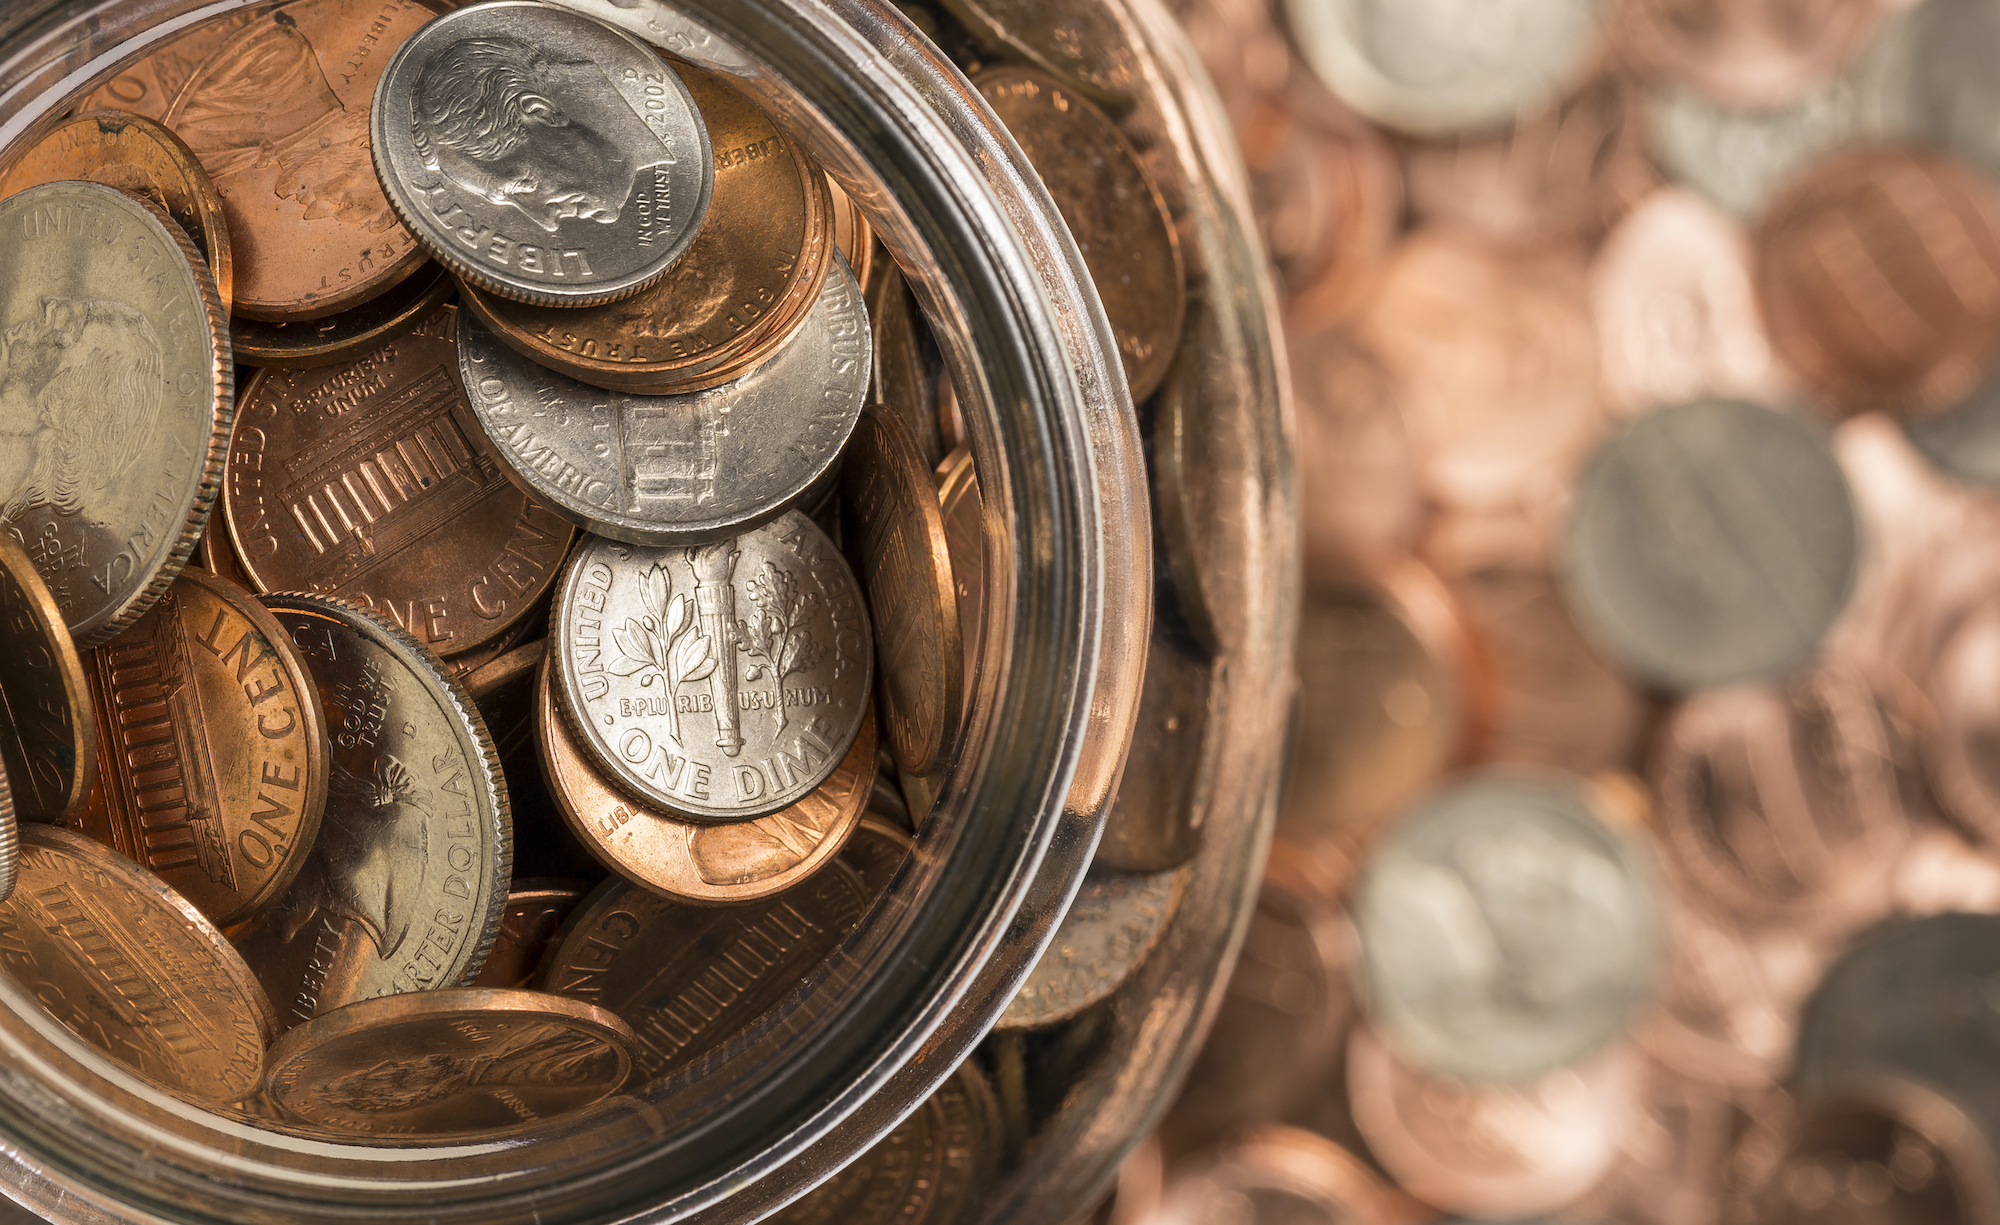 Micro-Investing Apps Are a Good Start, but You'll Need to Step Up Your Savings Game